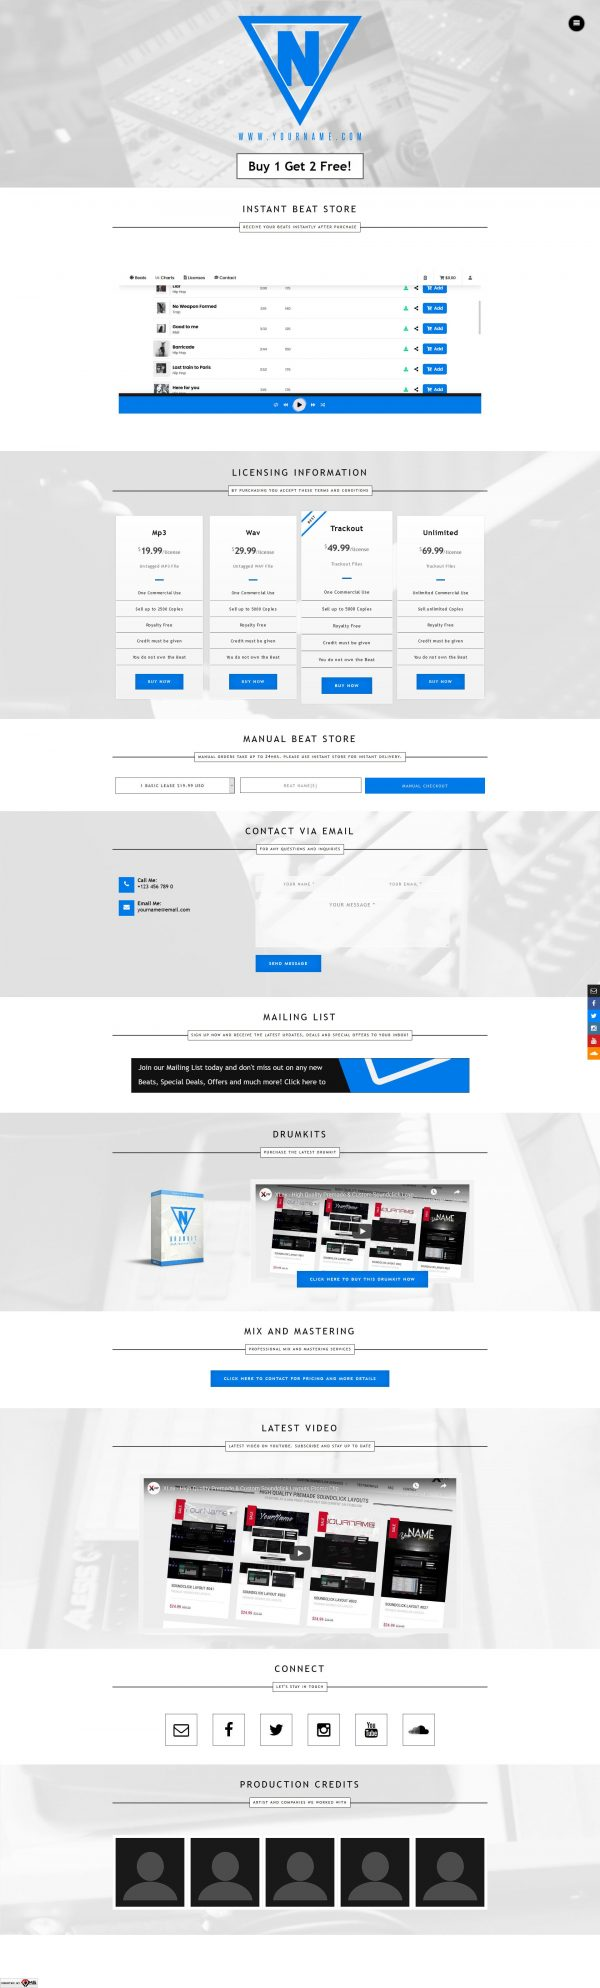 Premade One Page Website #069 Fullsize Preview